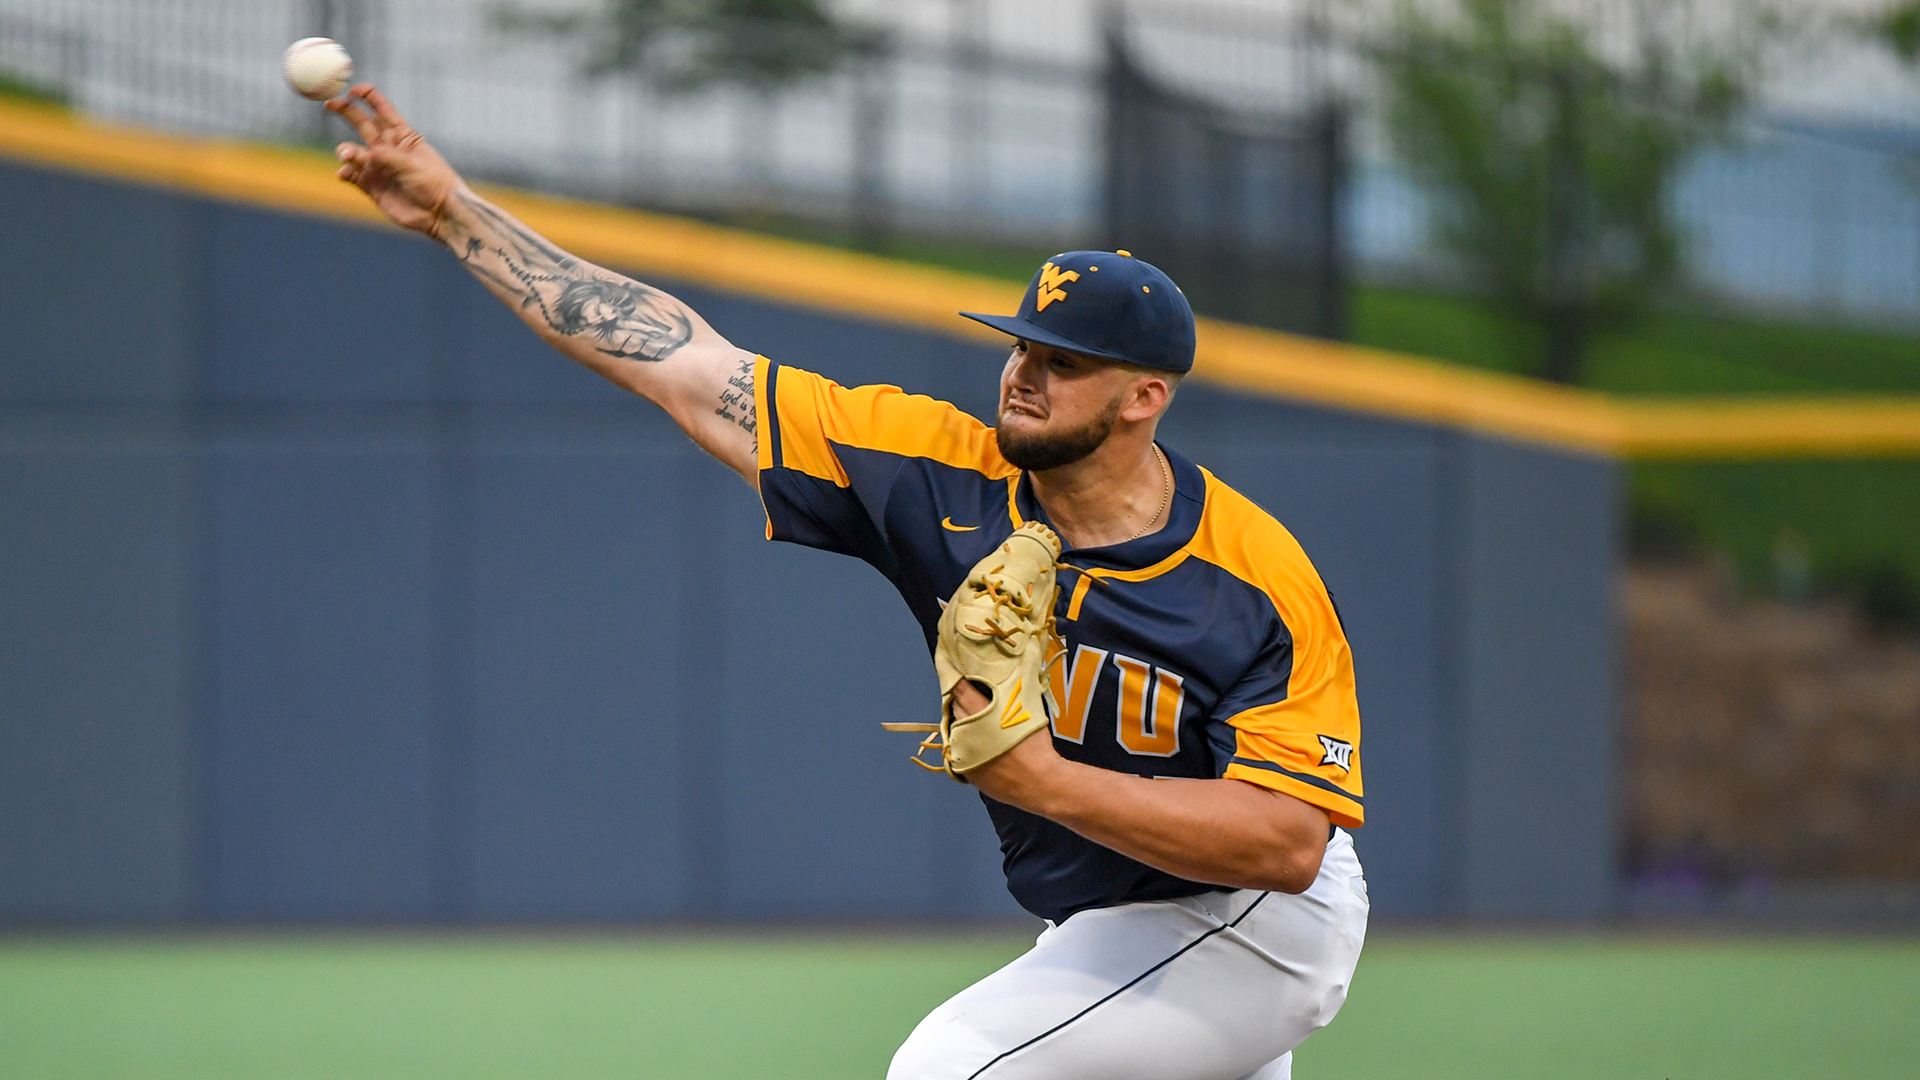 The Toronto Blue Jays selected right-hander Alek Manoah with their first pick in the 2019 MLB draft. He is shown here pitching for West Virginia University. Photo: West Virginia Athletics